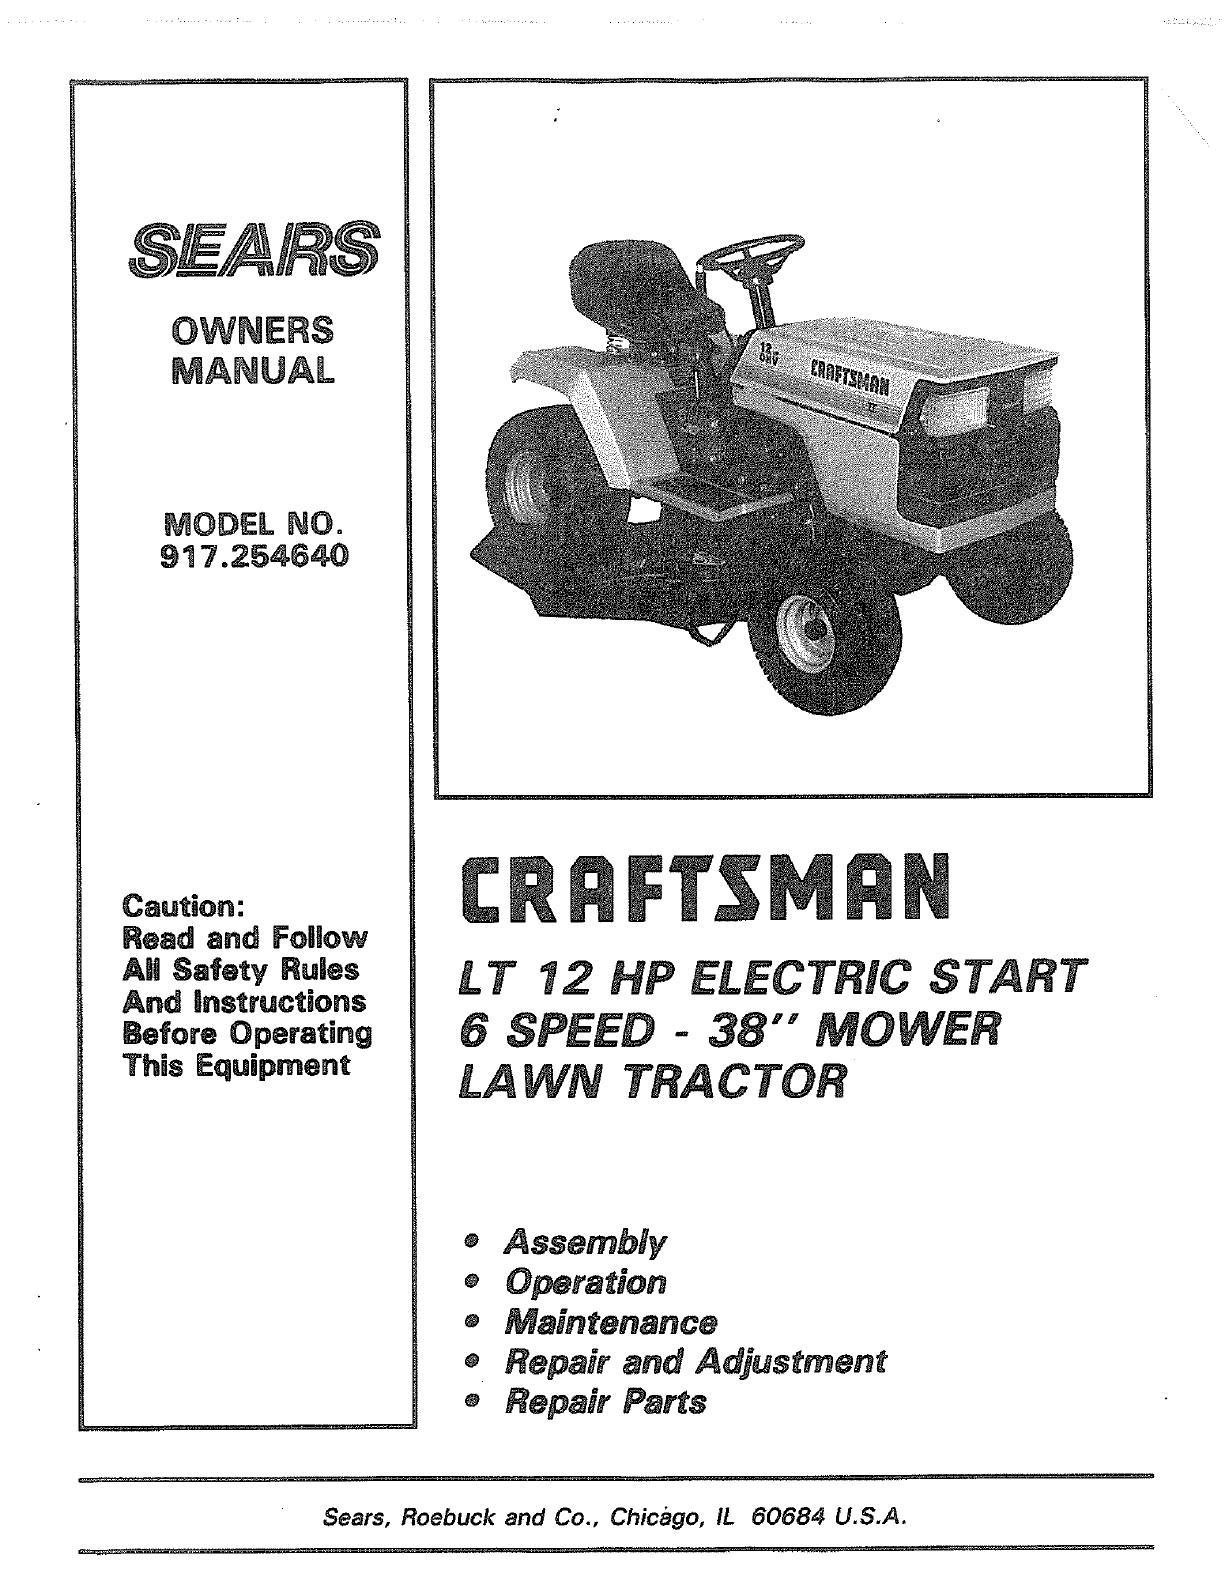 Craftsman 917254640 User Manual 12 H.P. 38 RIDING LAWN TRACTOR Manuals And  Guides LR708037